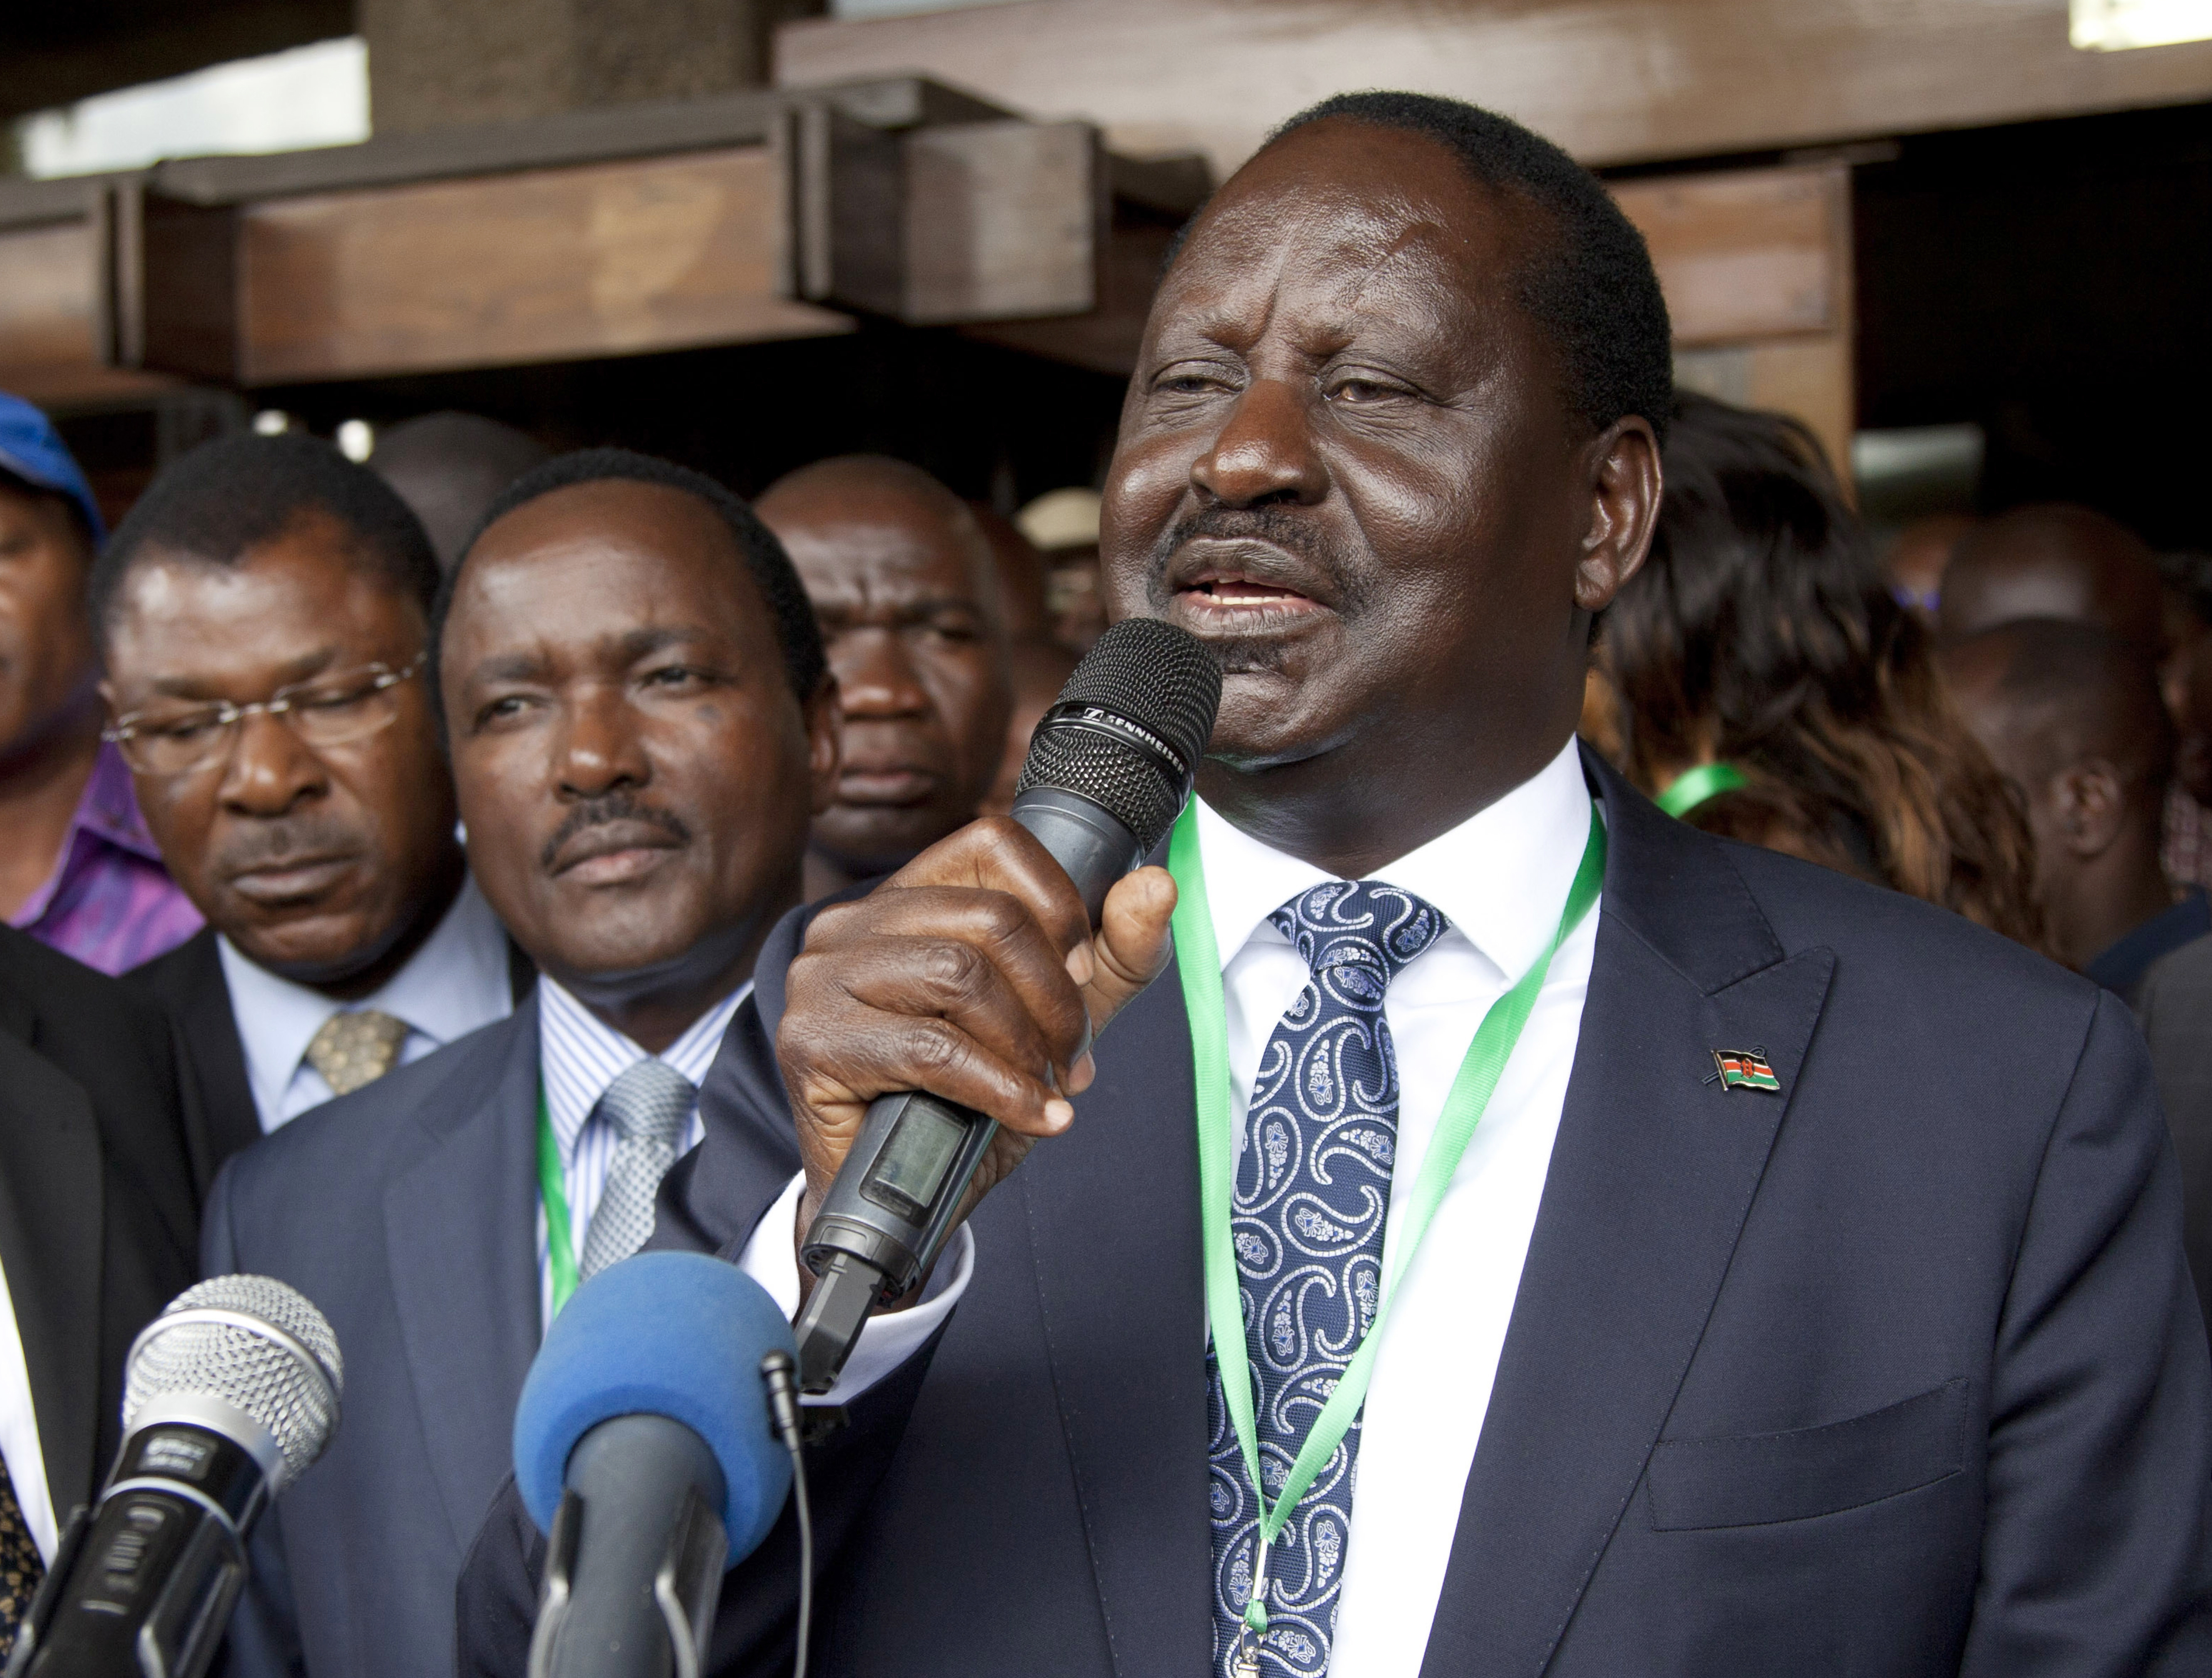 FILE - In this photo dated May 28, 2017, National Super Alliance Presidential candidate Raila Odinga, addresses supporters after he presented his presidential papers in Nairobi, Kenya.